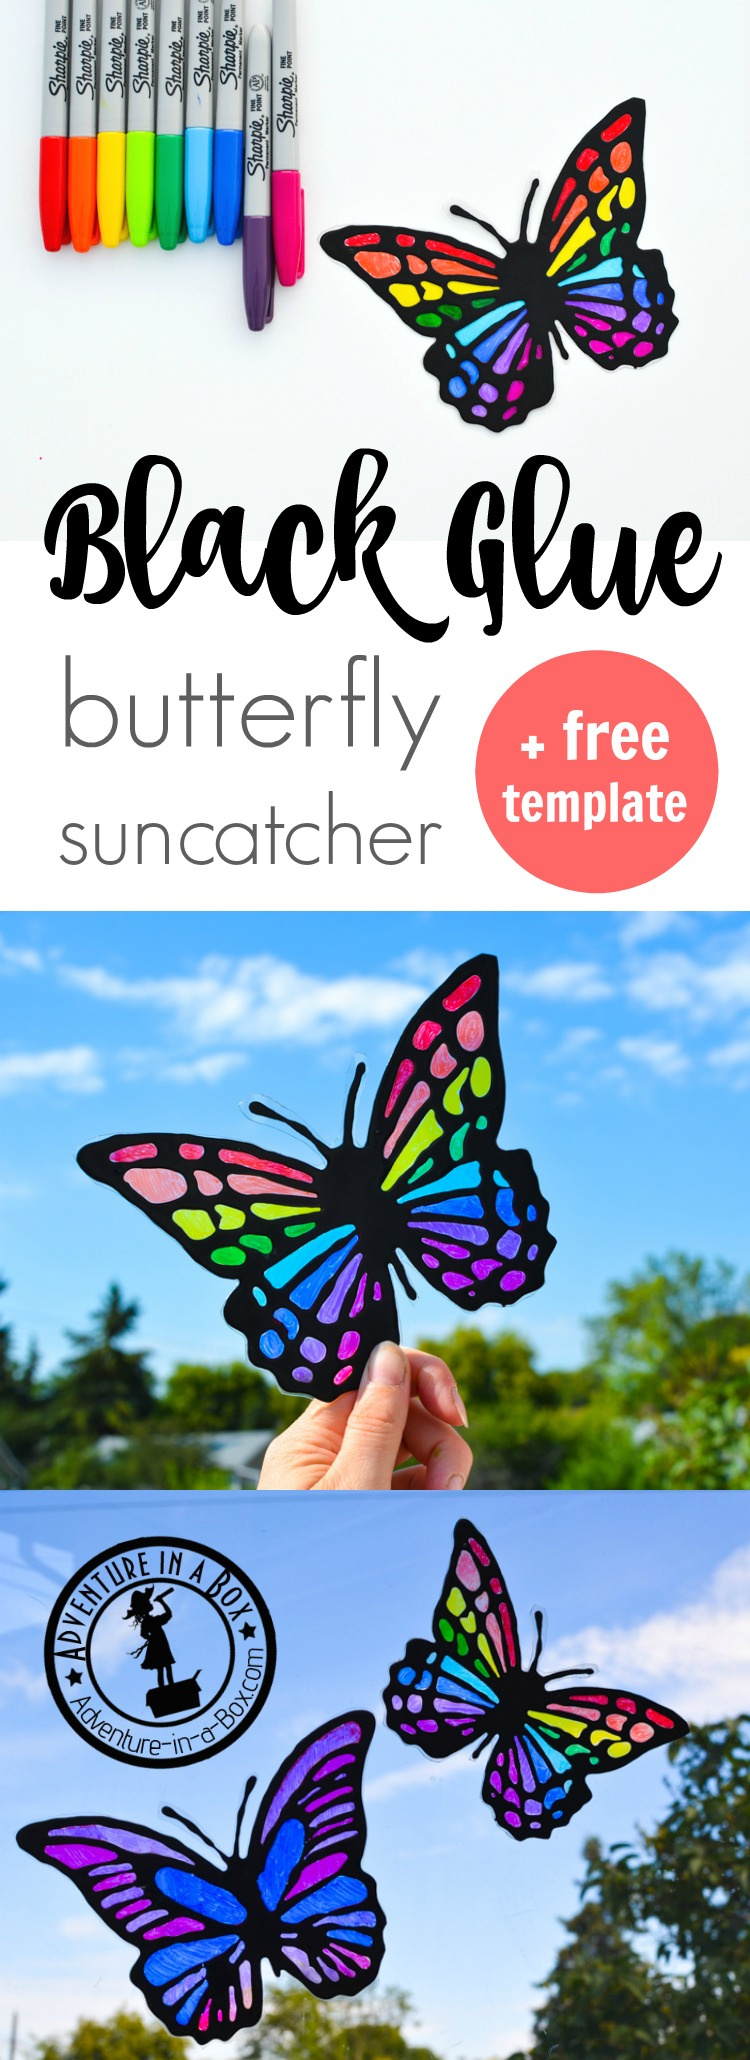 Want to make a cheery butterfly suncatcher craft with kids? It's easy if you make black glue and have on hand some sharpie markers and recyclables.